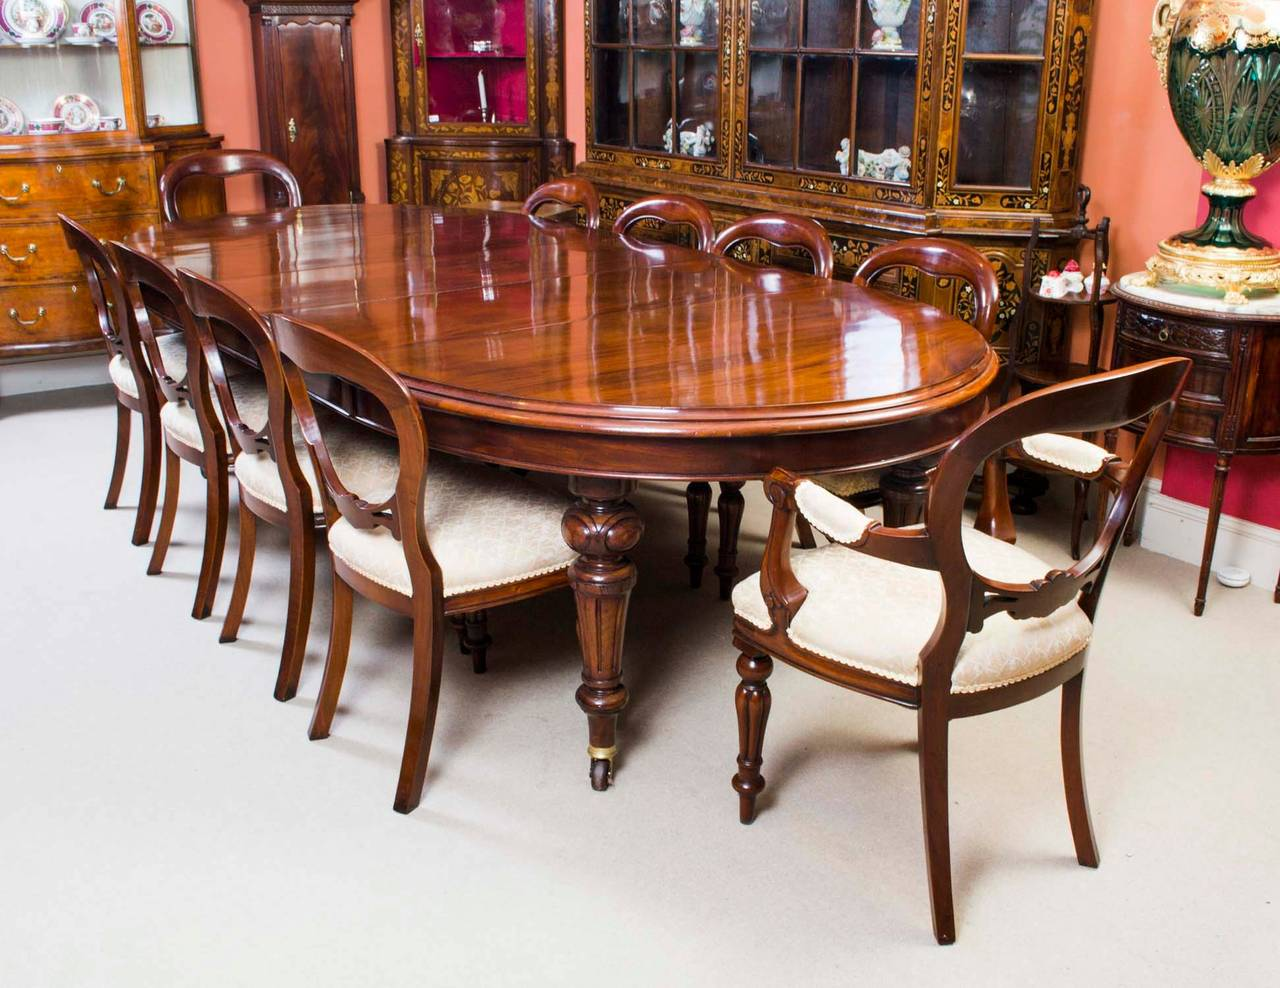 Antique victorian extending dining table circa 1870 at for Dining room tables victorian